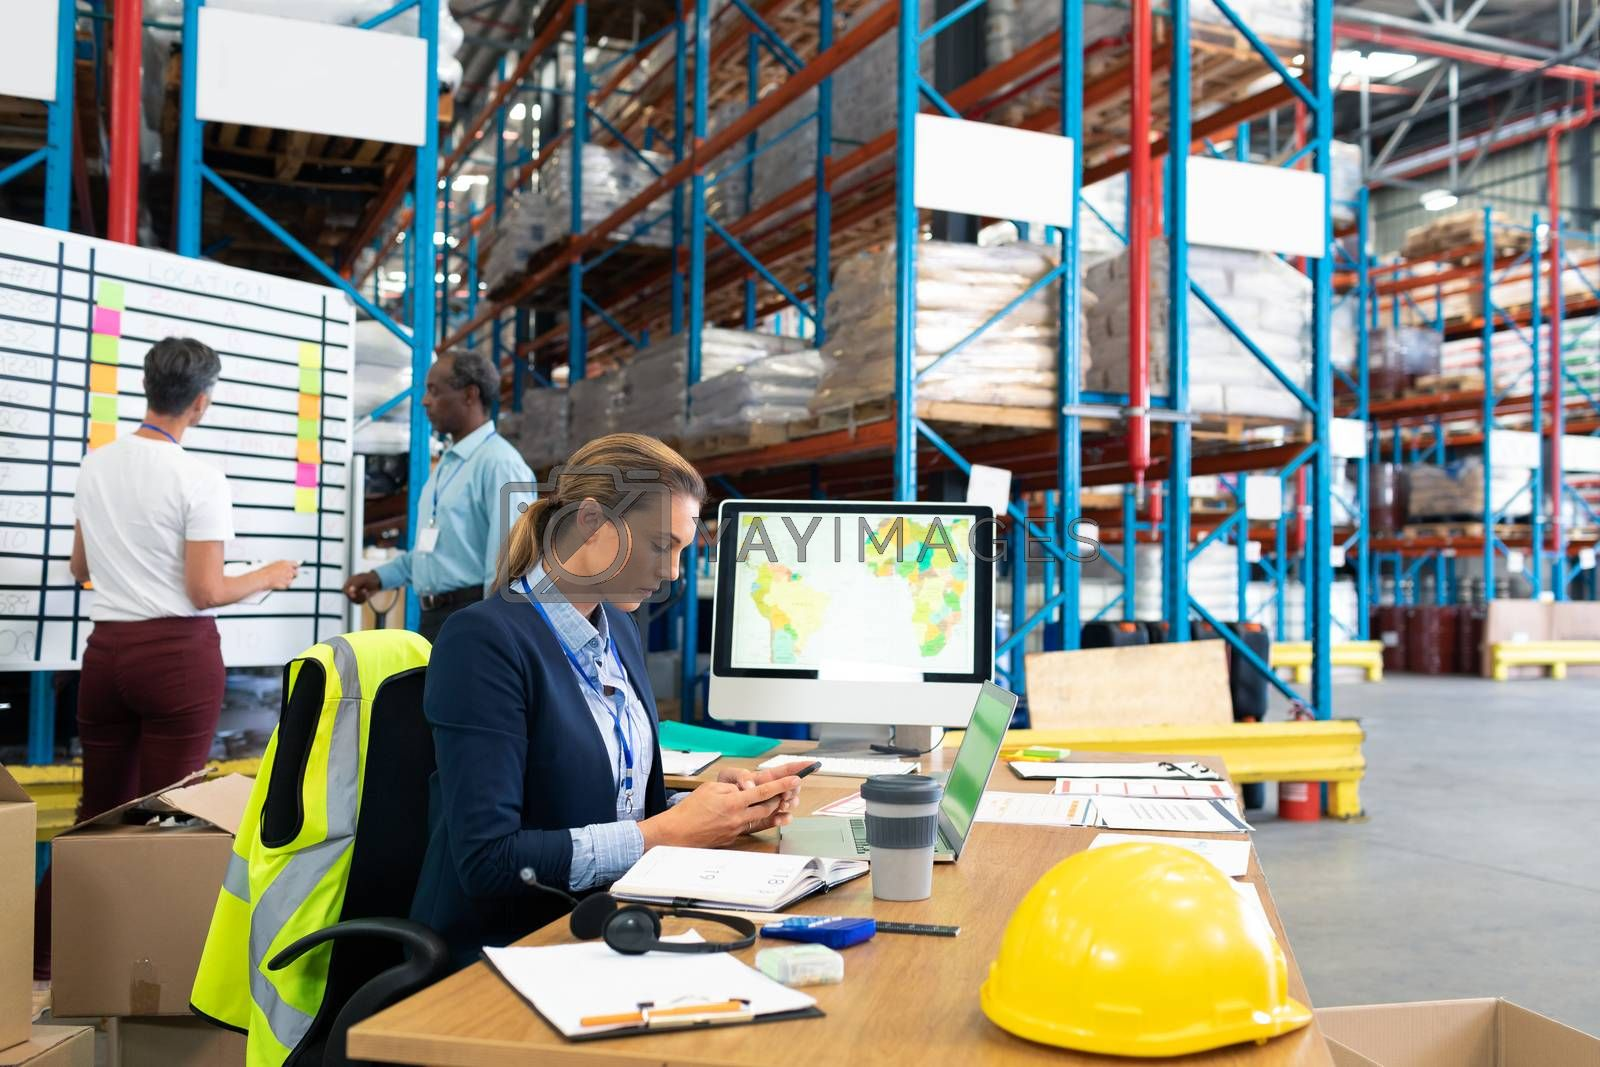 Side view of beautiful Caucasian female manager using mobile phone at desk in warehouse. In the background diverse colleagues are discussing in front of whiteboard. This is a freight transportation and distribution warehouse. Industrial and industrial workers concept